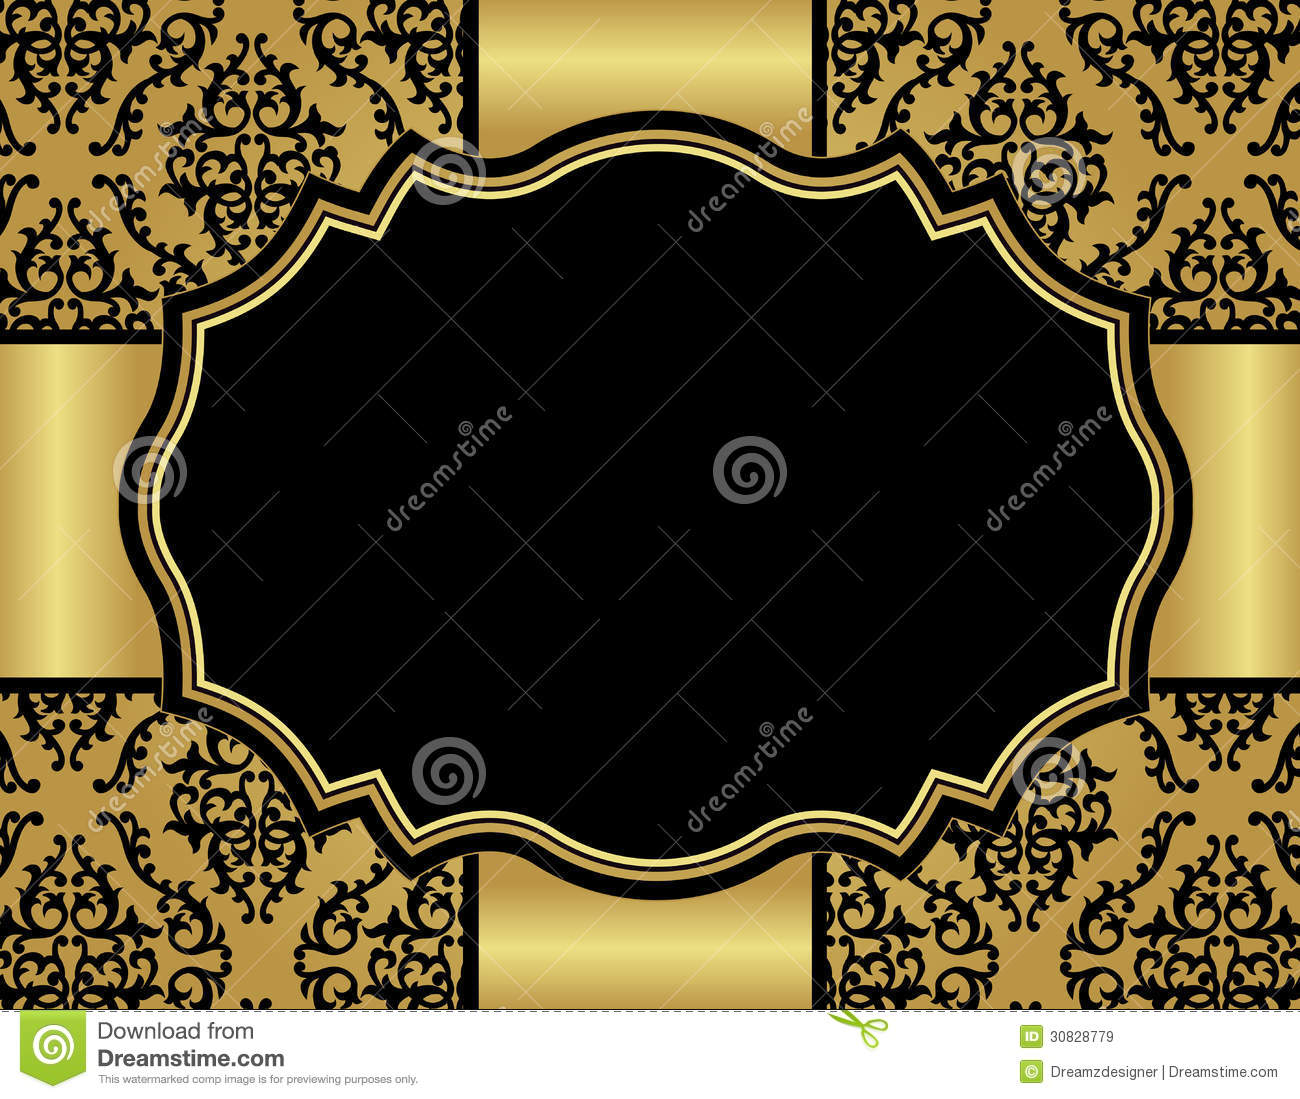 Luxury Invitation Card With Damask Seamless Patter Stock